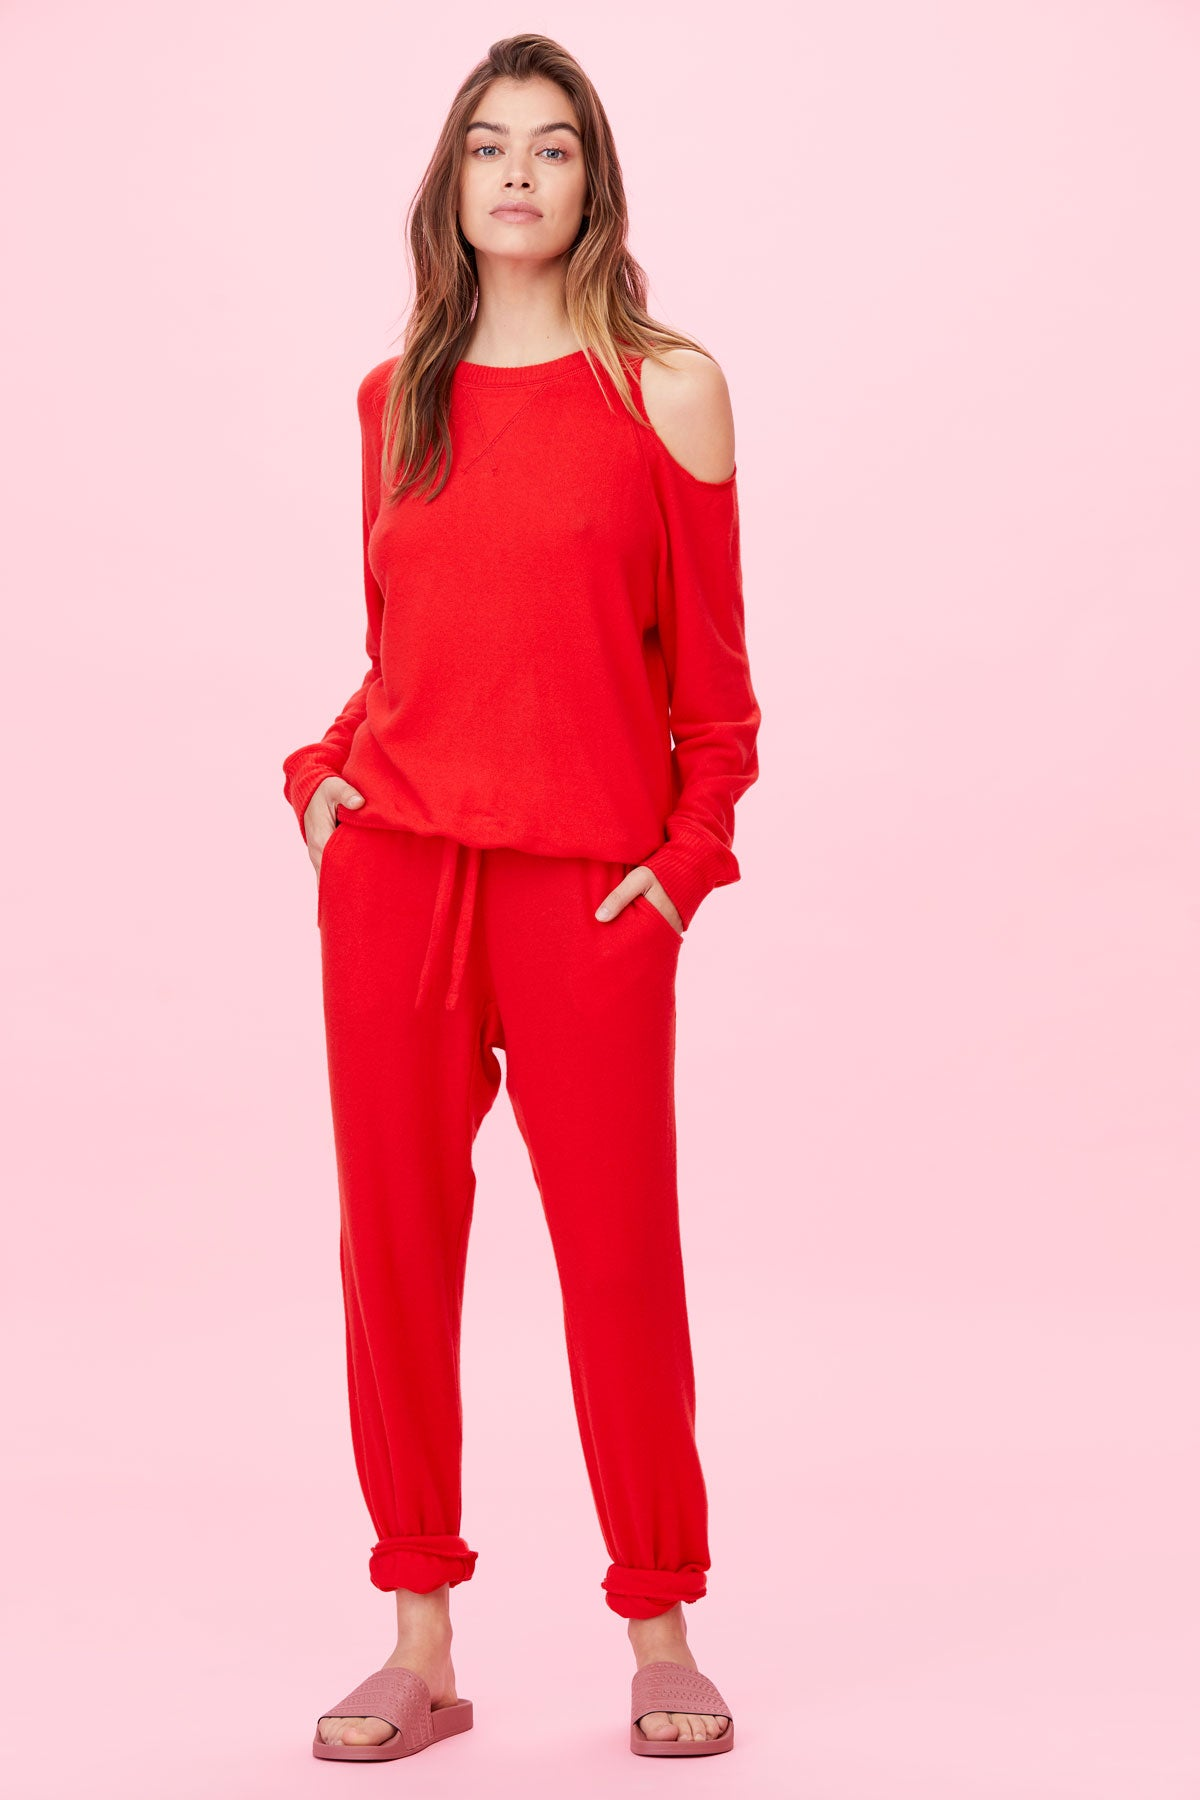 LNA Brushed Cutout Heart On My Sleeve Sweater in Fiery Red